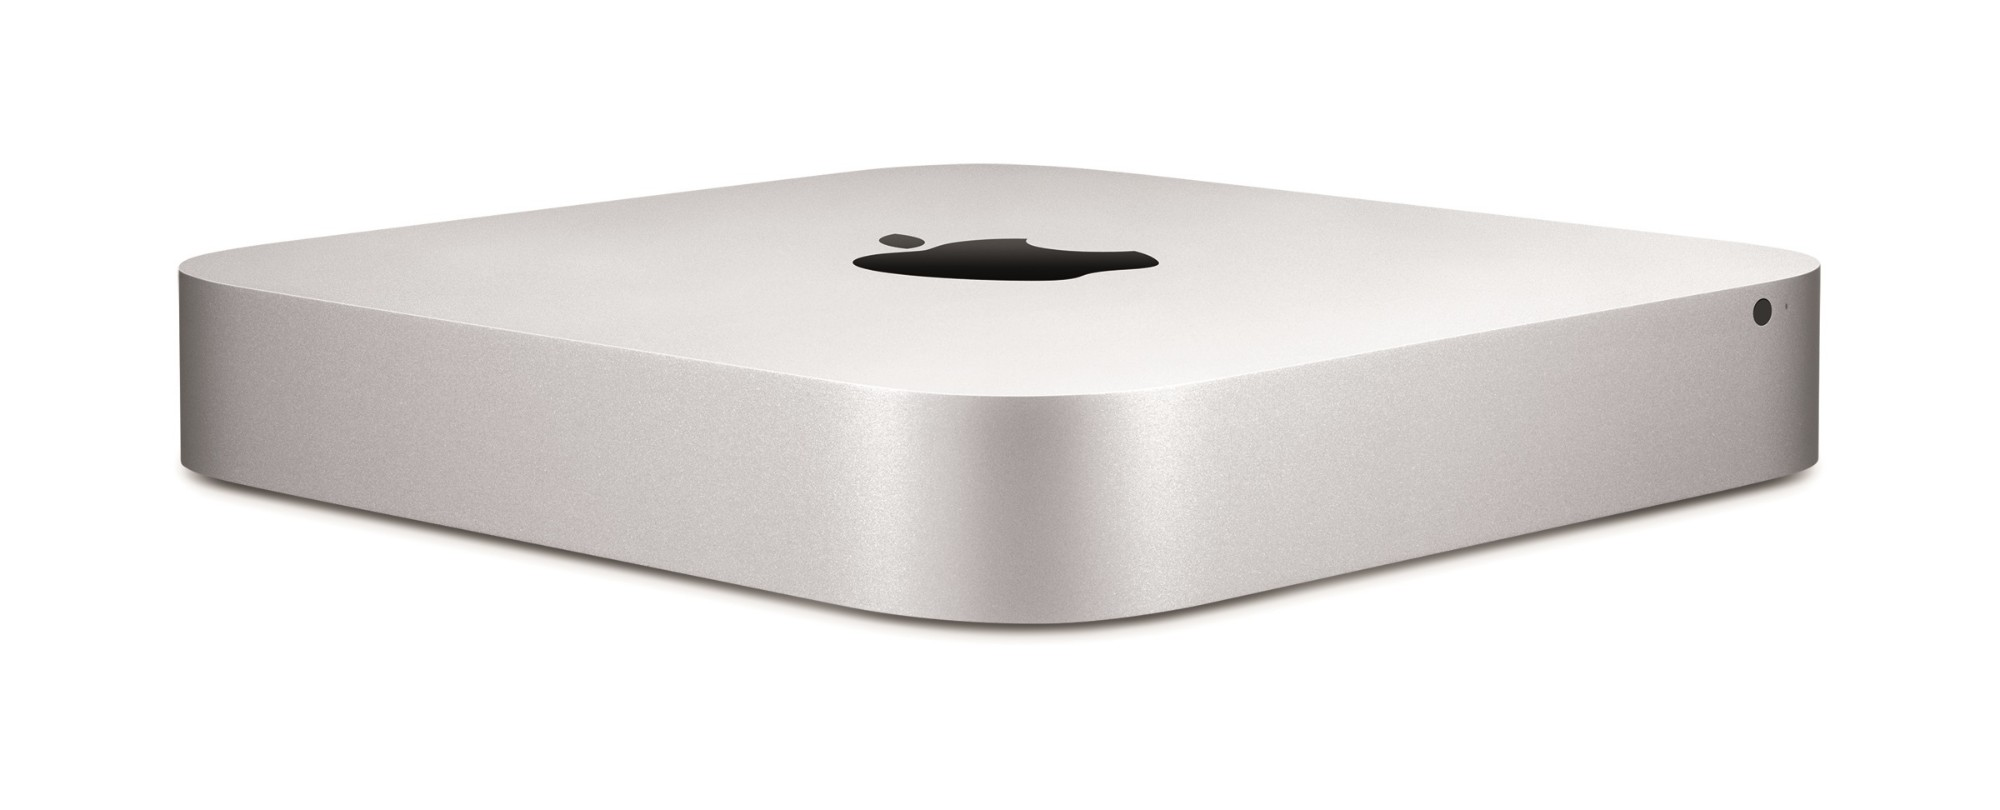 Apple Mac mini 2.6GHz 2.6GHz Nettop Silver